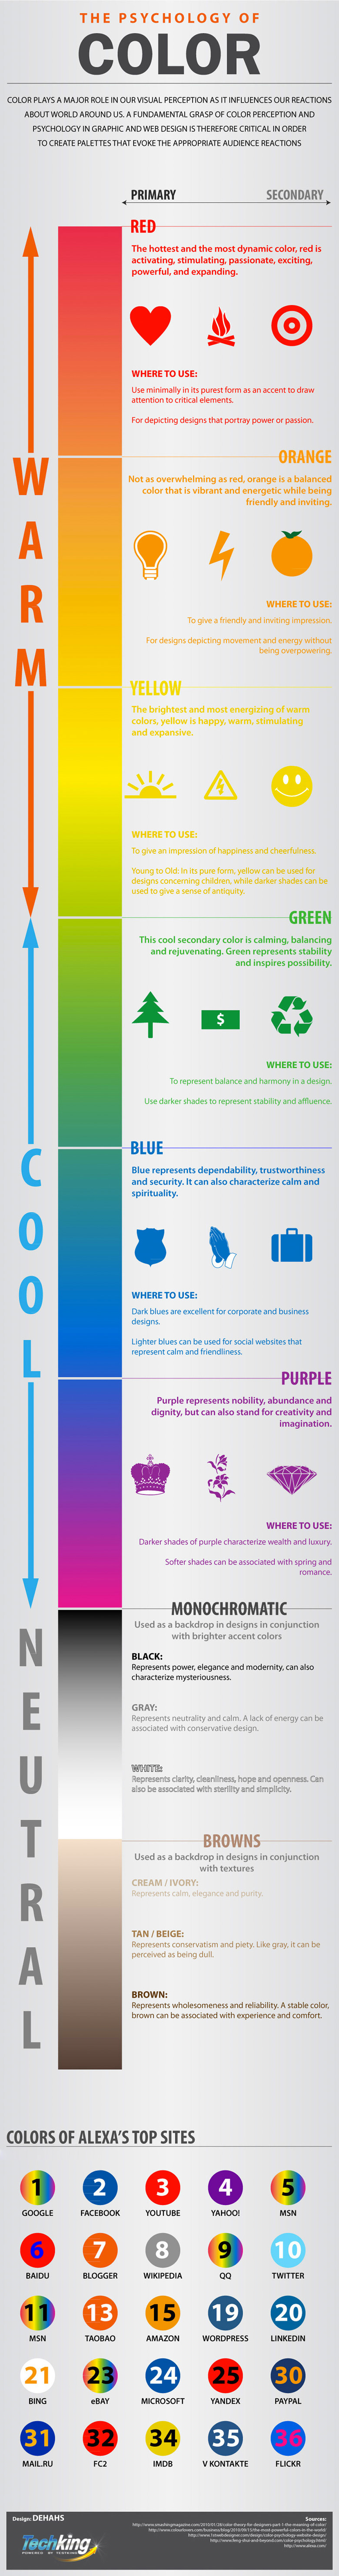 color-psychology-meanings-usage-infographic